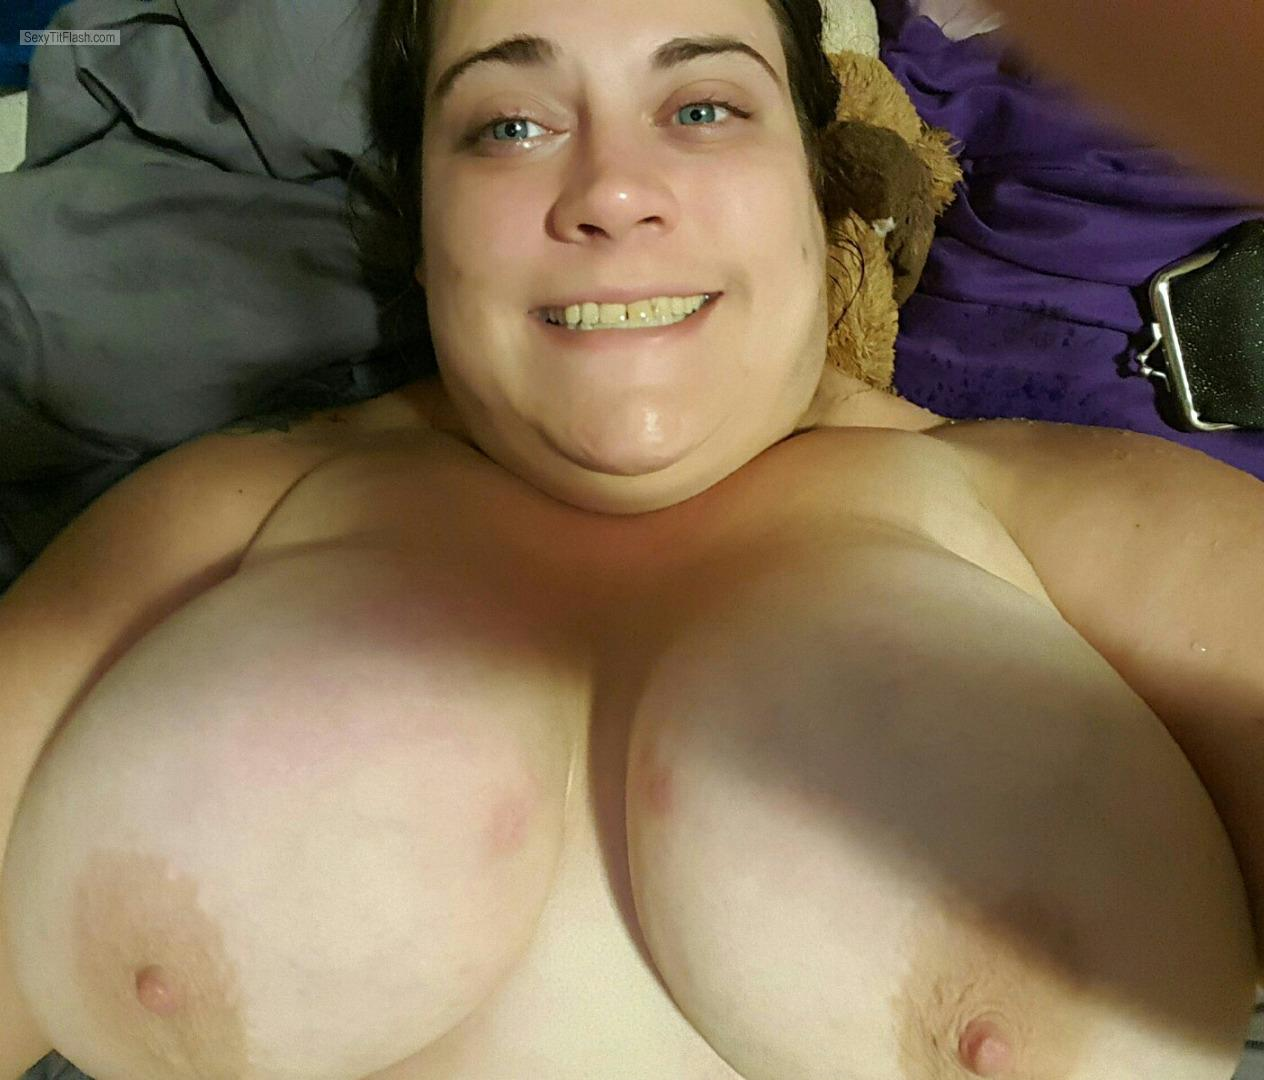 Tit Flash: My Very Big Tits (Selfie) - Topless Jackelyn858 from United States